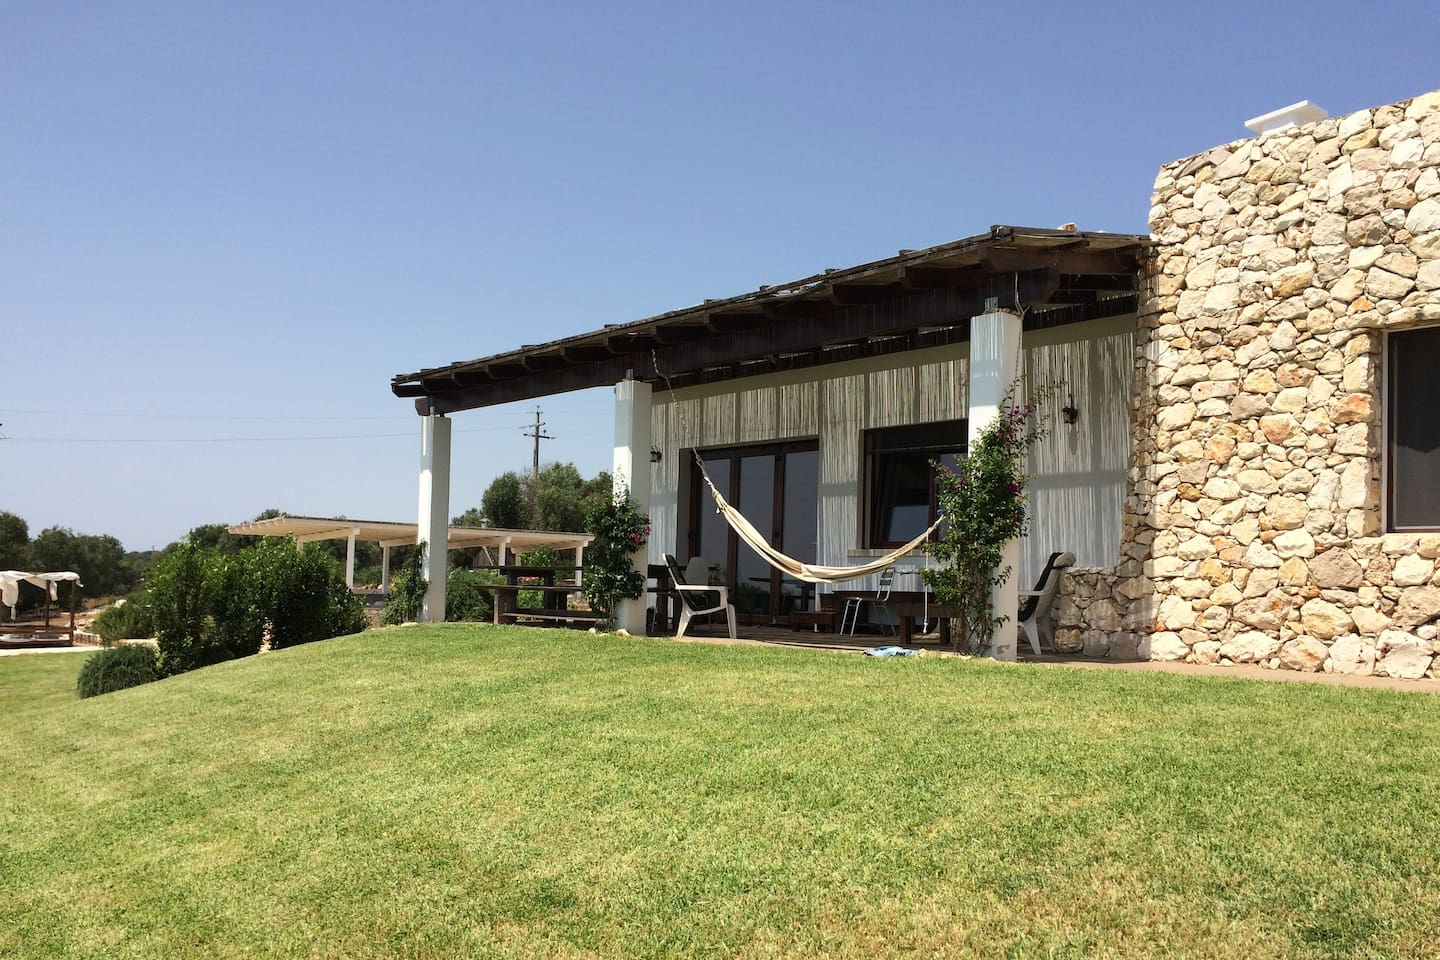 Luxury hilltop villa combing the old and the new of Salento style